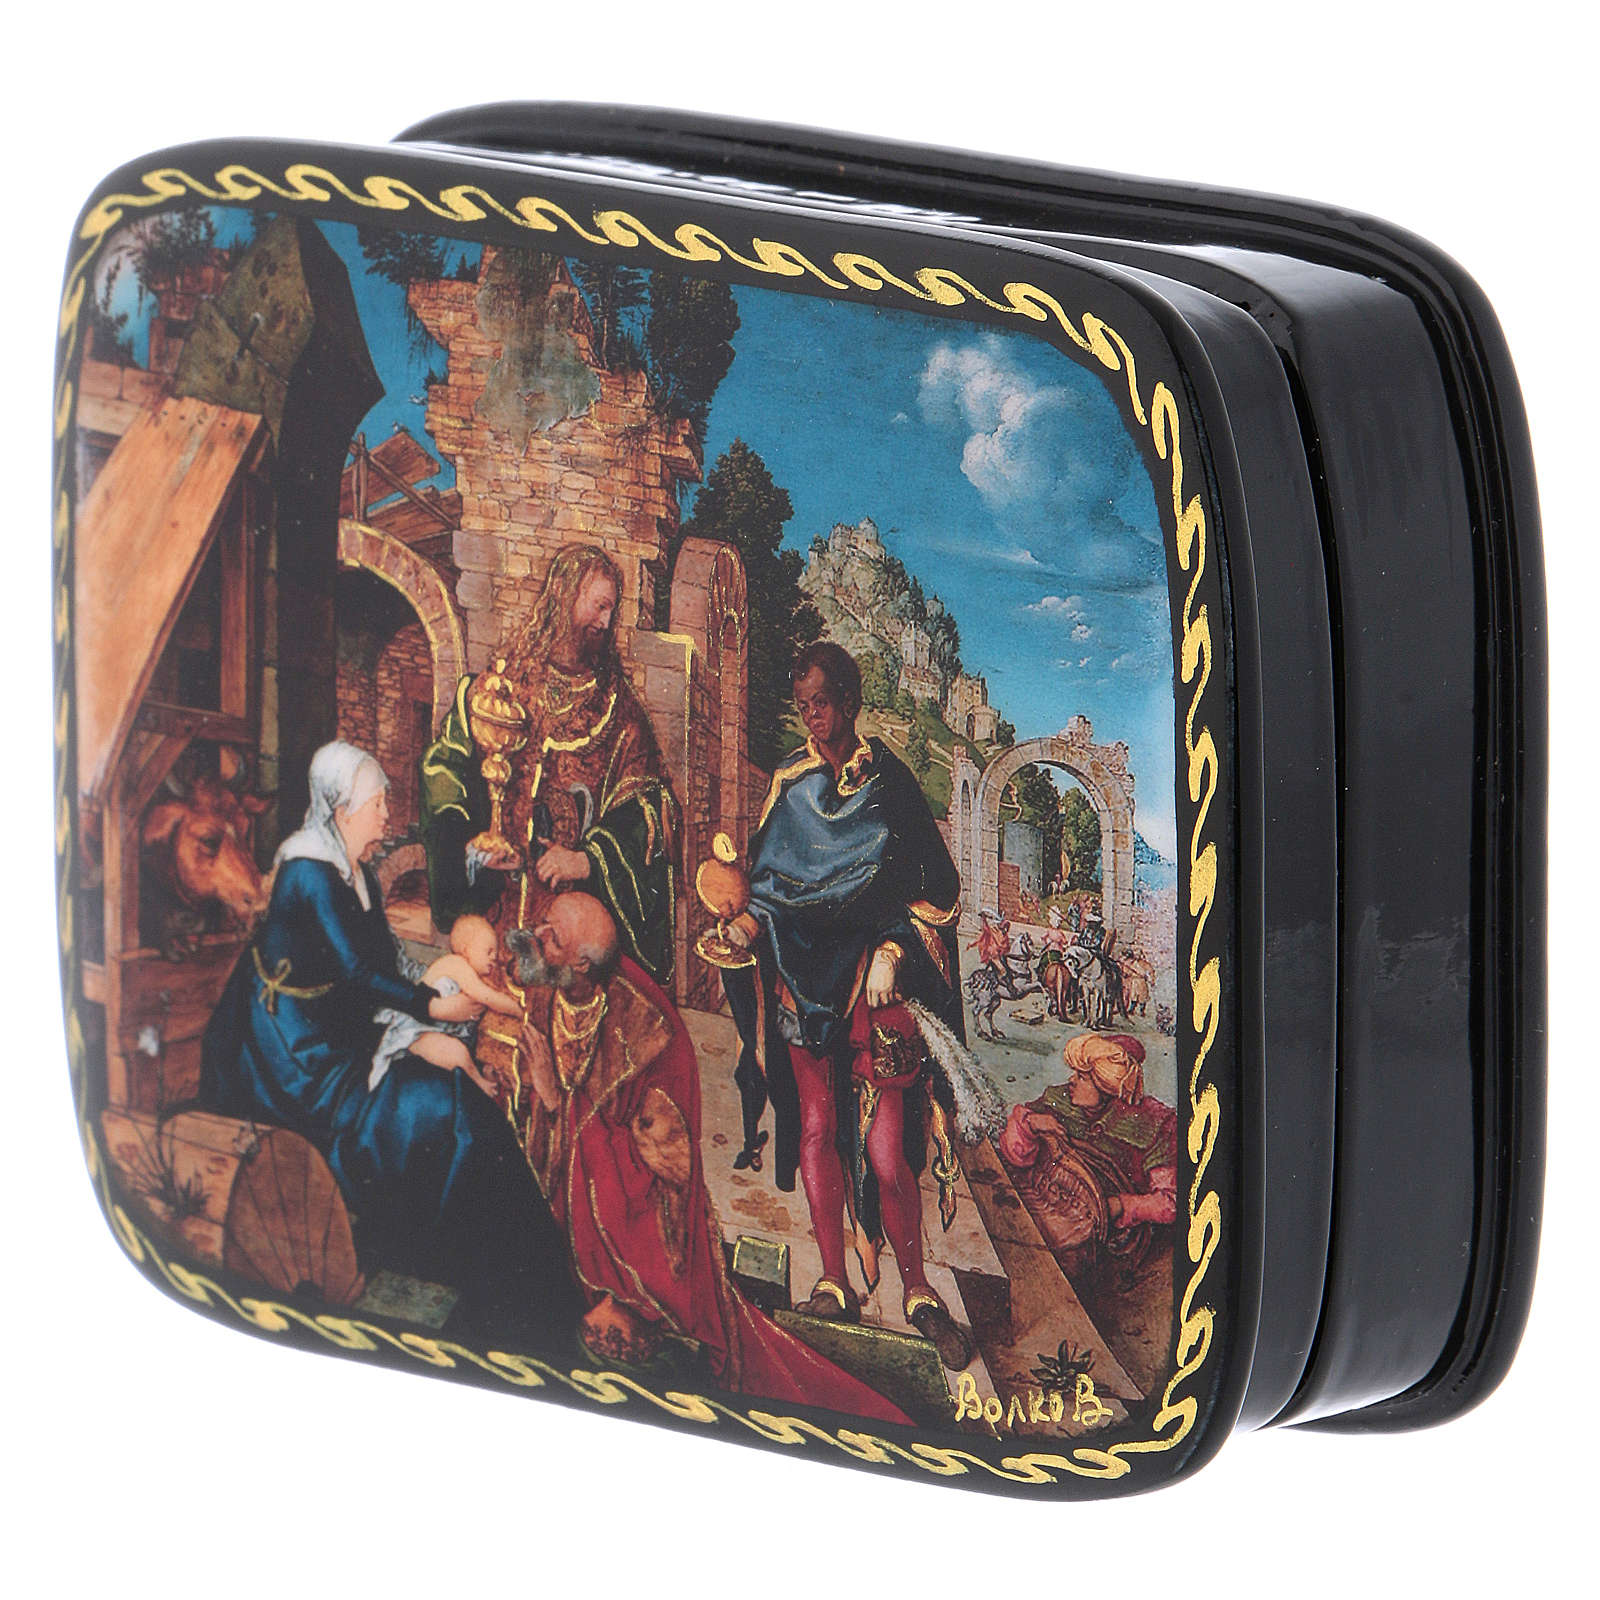 Russian Papier-mâché box The Adoration of the Three Wise Men Fedoskino style 11x8 cm 4